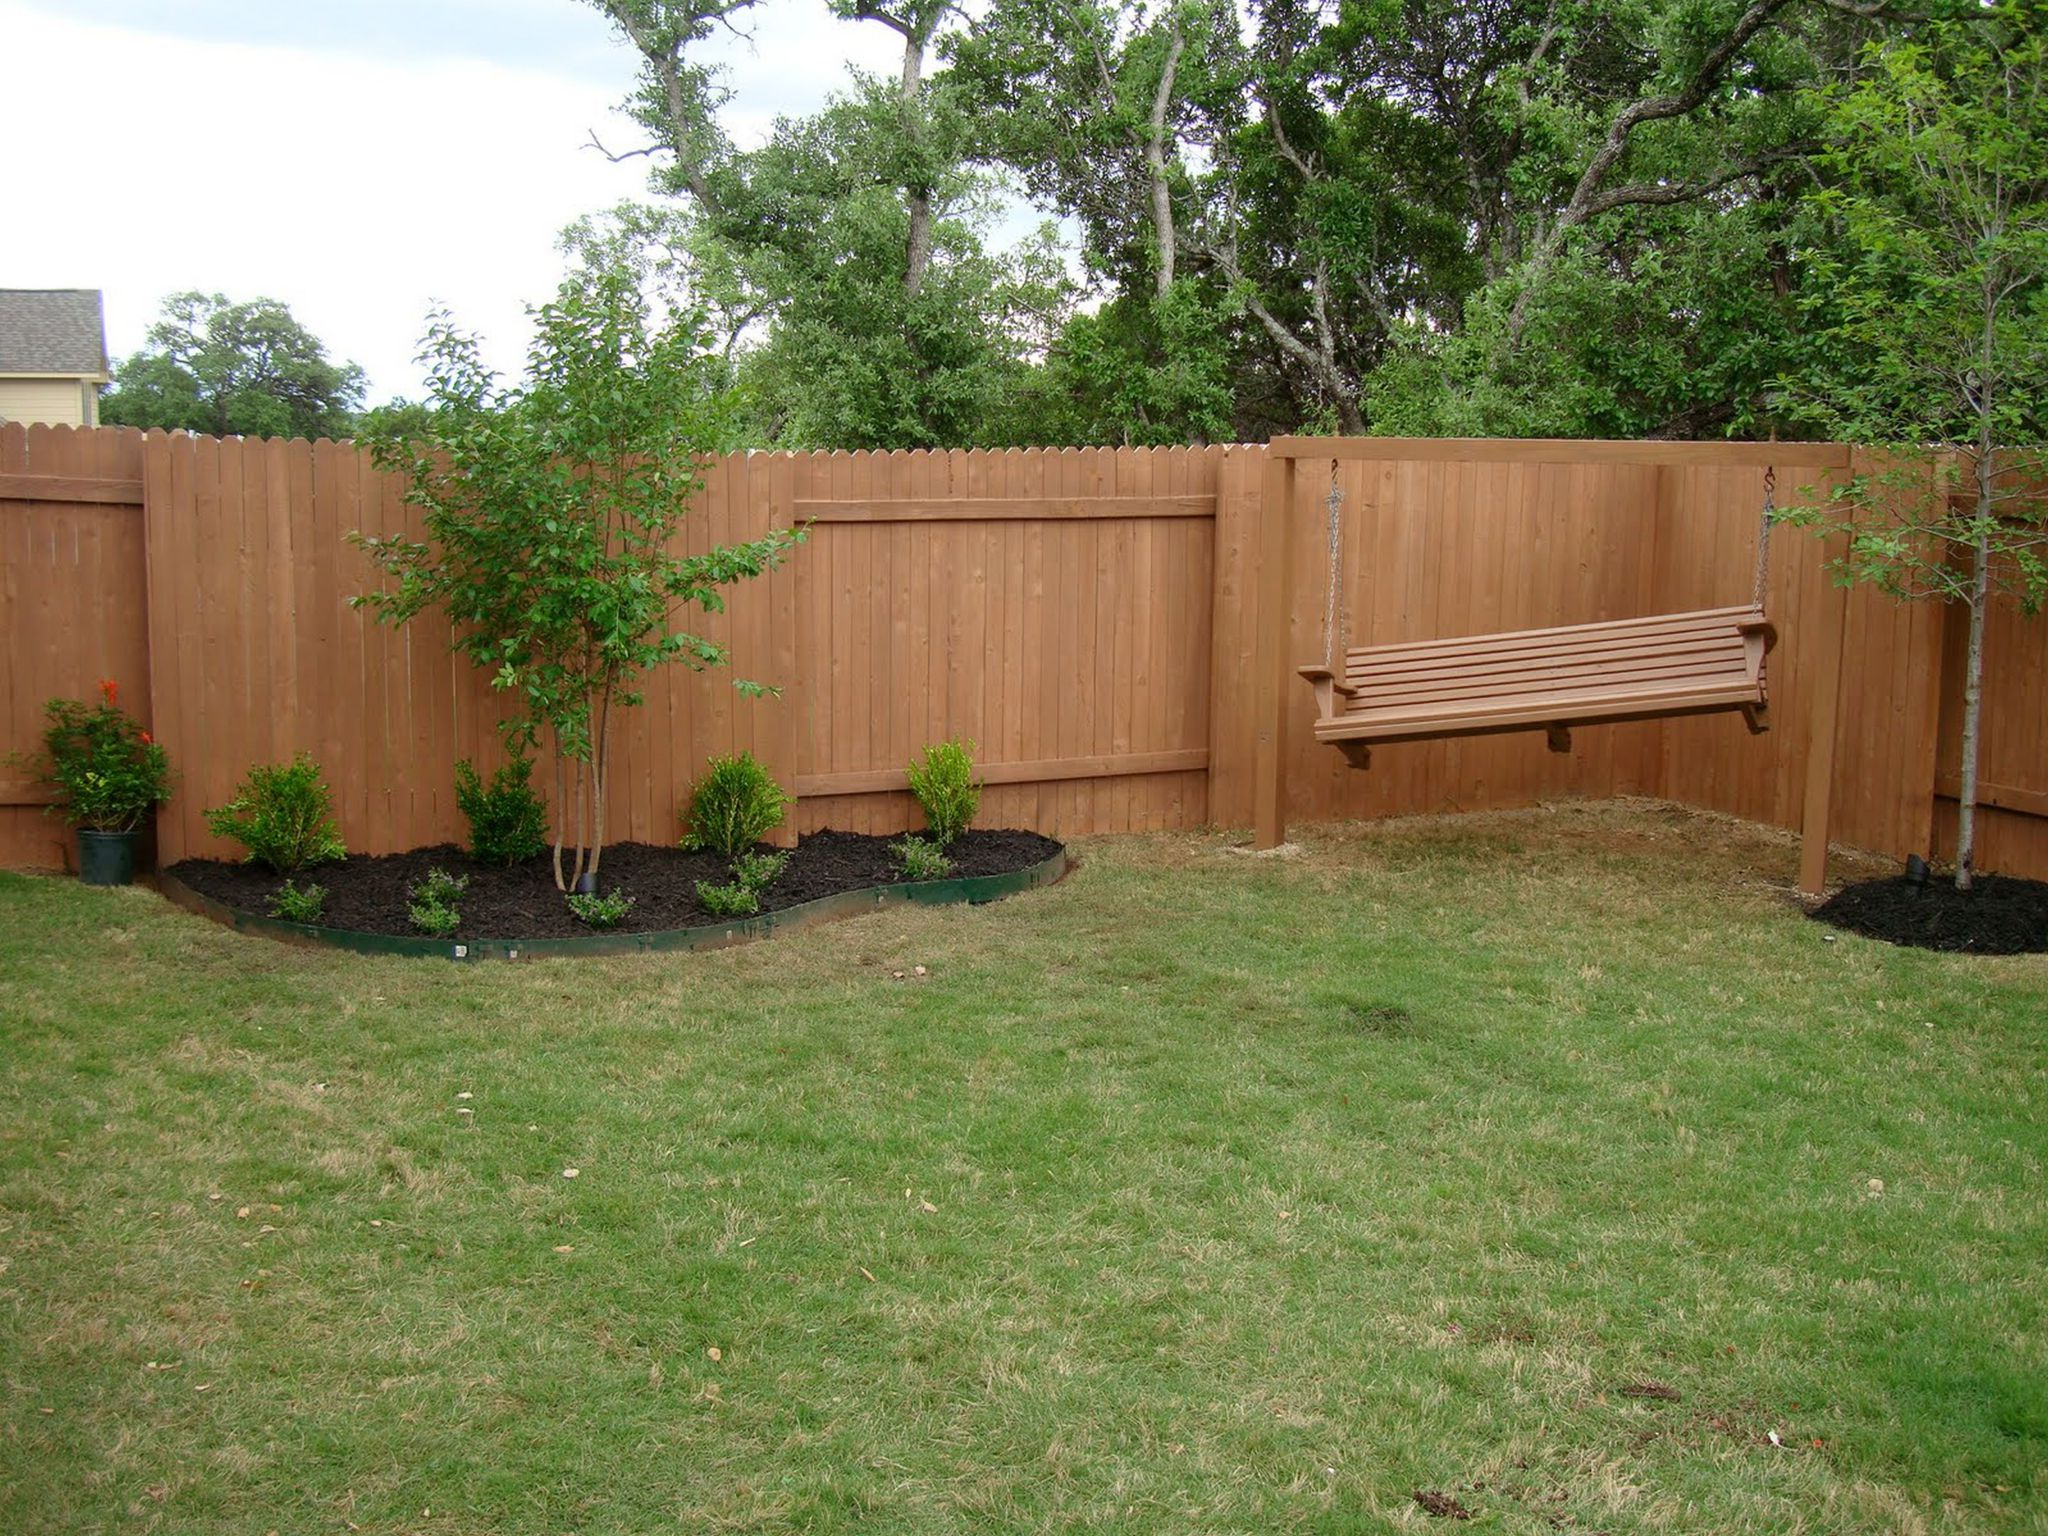 Some Helpful Cheap Backyard Fence Ideas Using The Recycle Material For The Adorable Yet Affordable Result Artmakehome